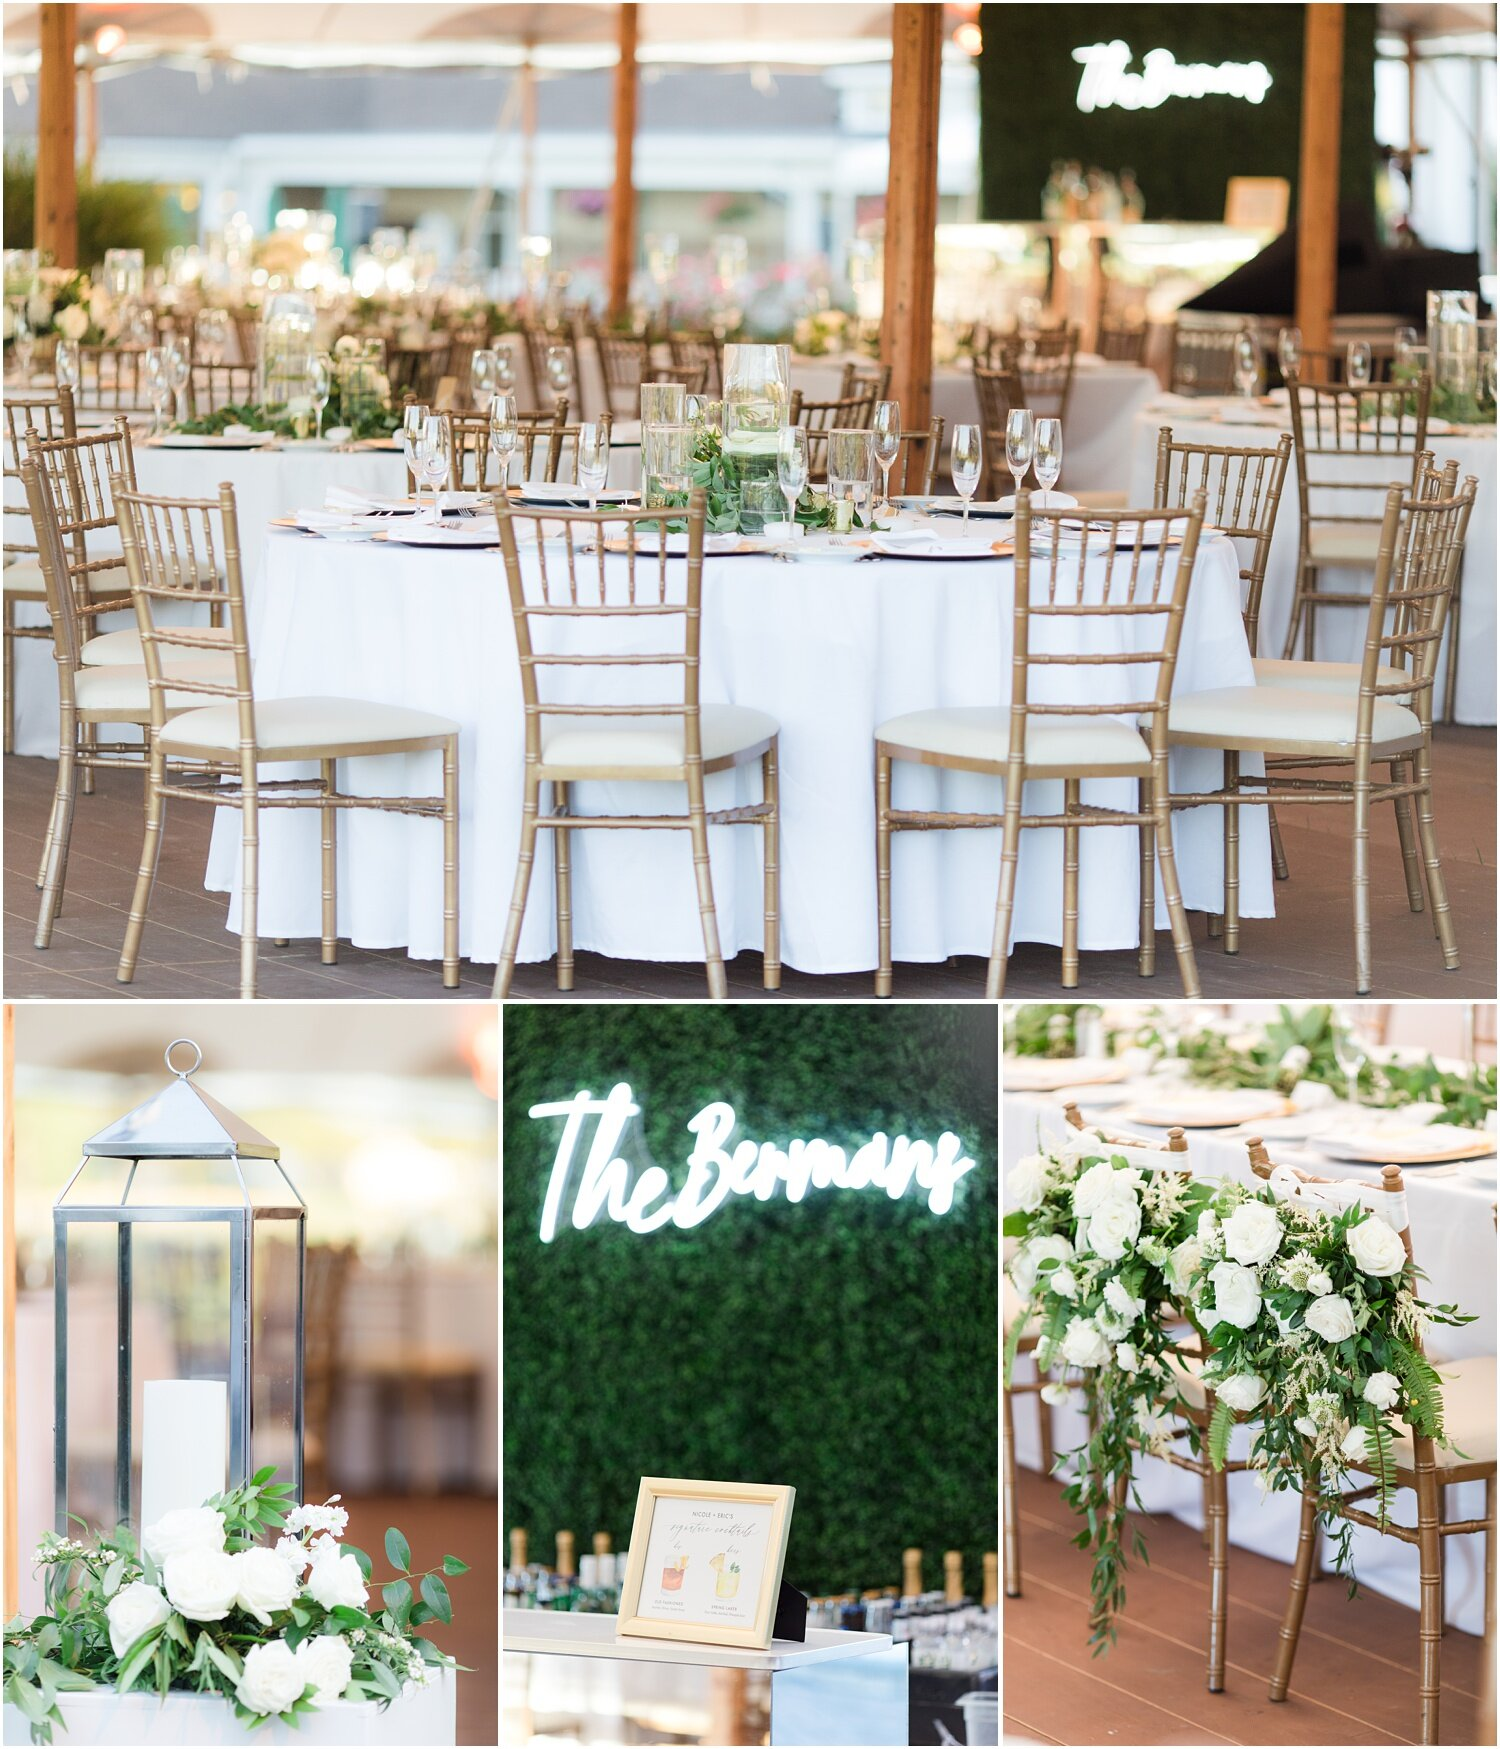 Wedding reception tables and decor.